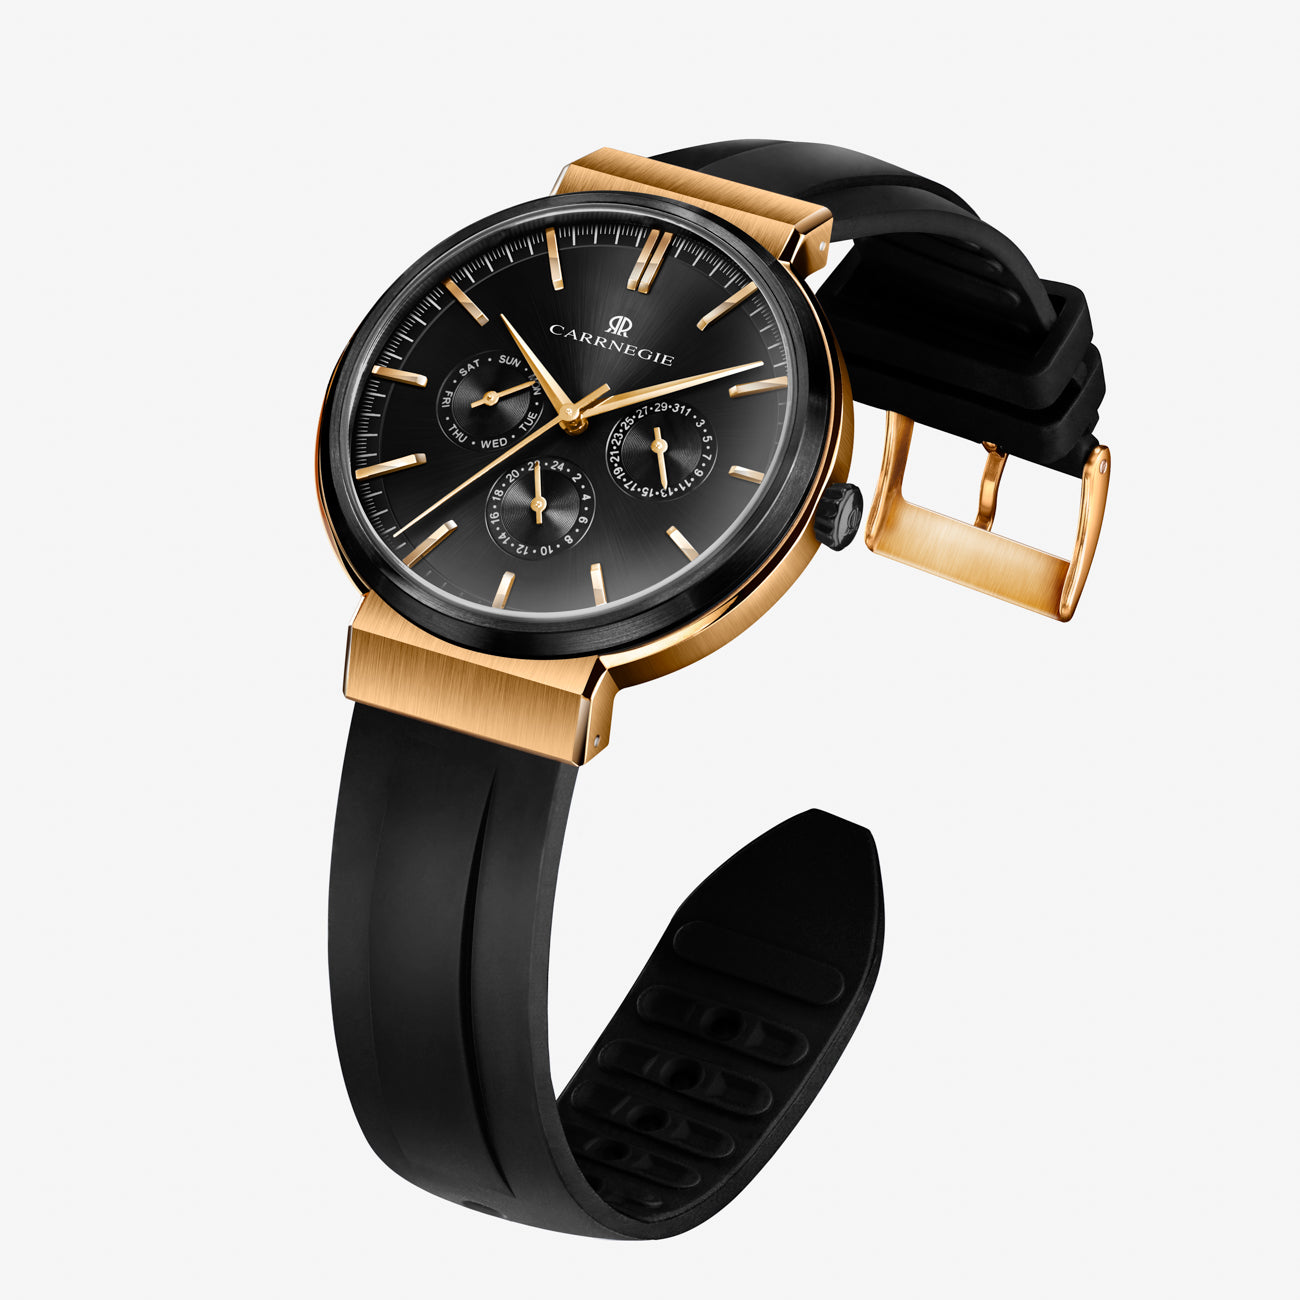 SPORTS BLACK ROSE GOLD